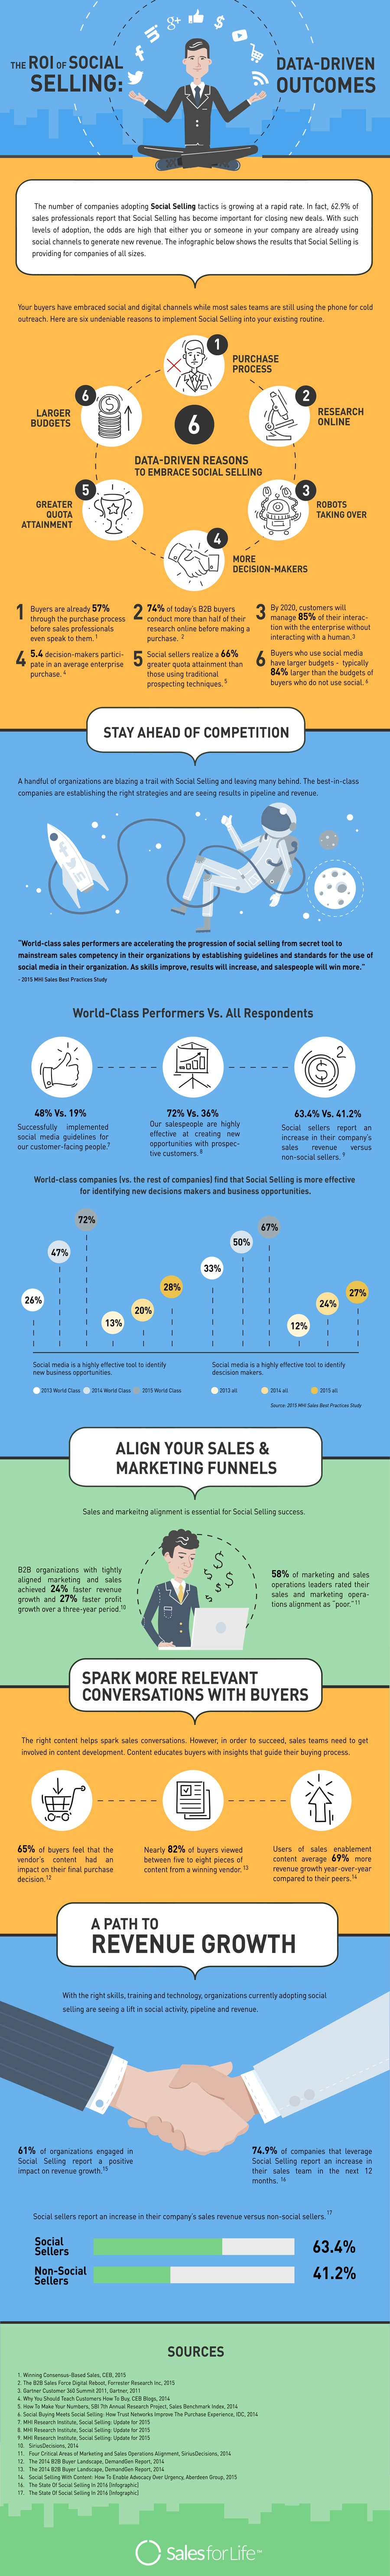 social-selling-roi-infographic-#WESOE